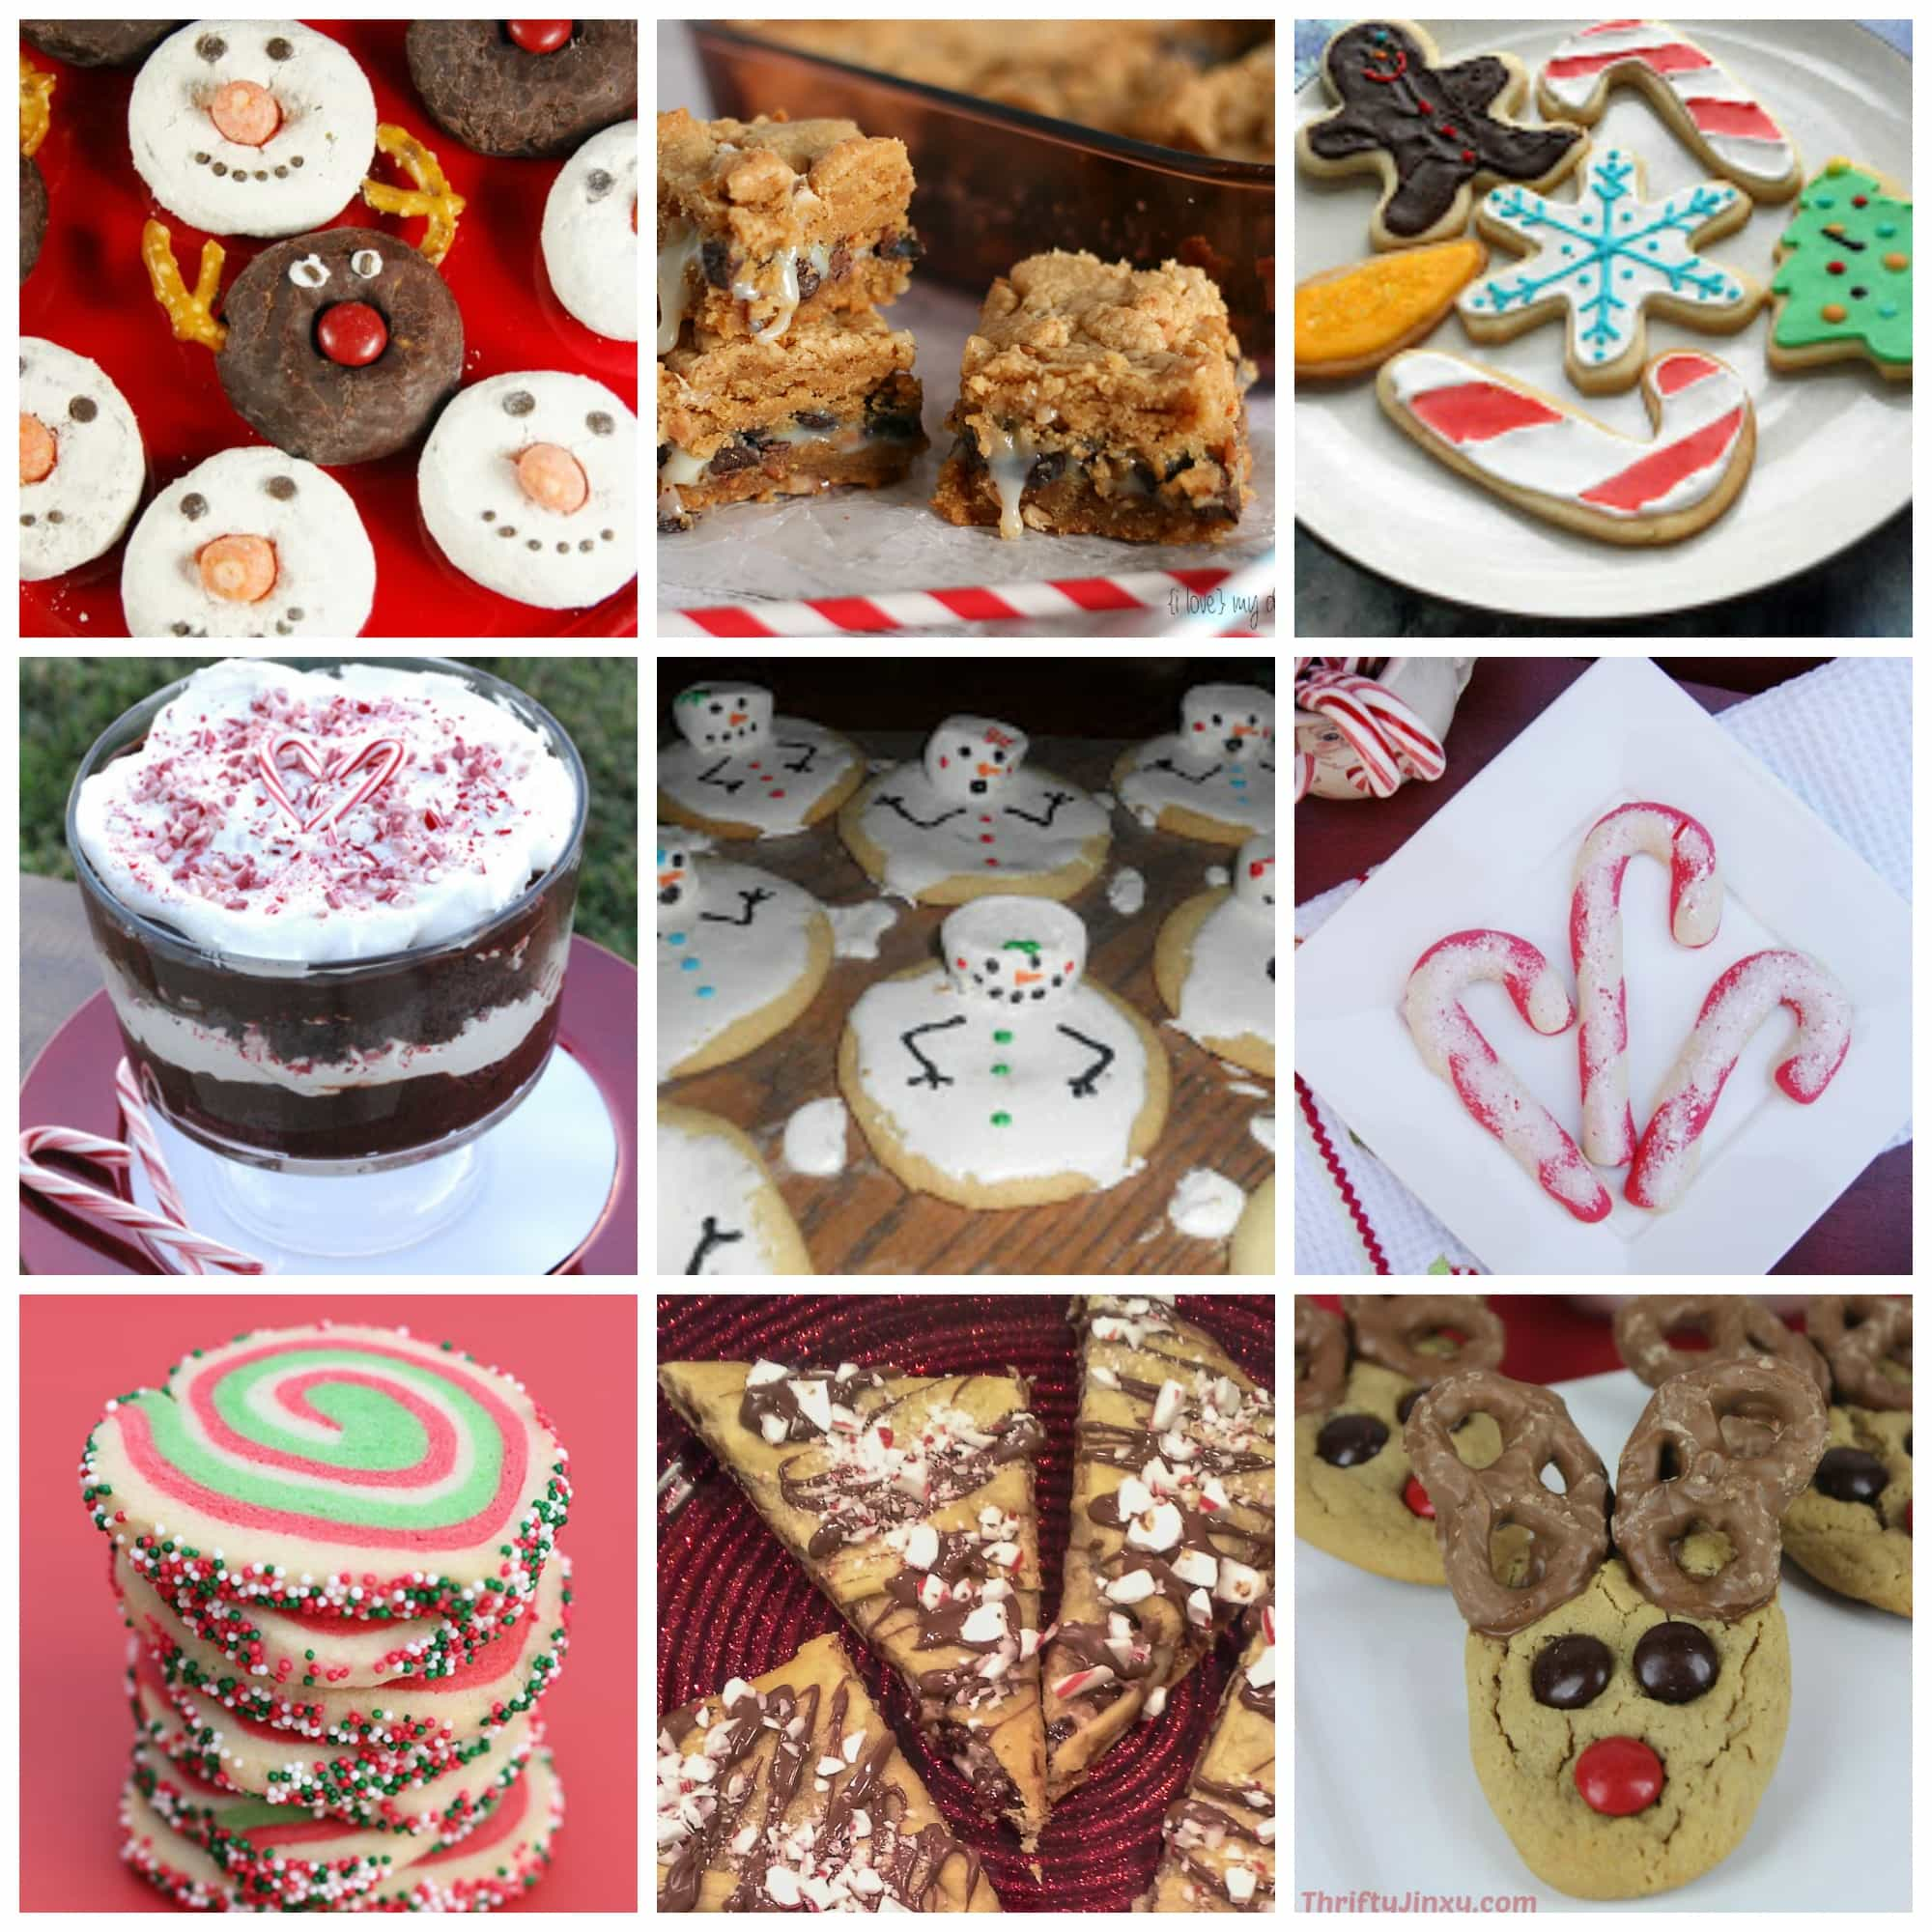 Christmas In July 50 Crafts Cookies And Gifts Hezzi D S Books